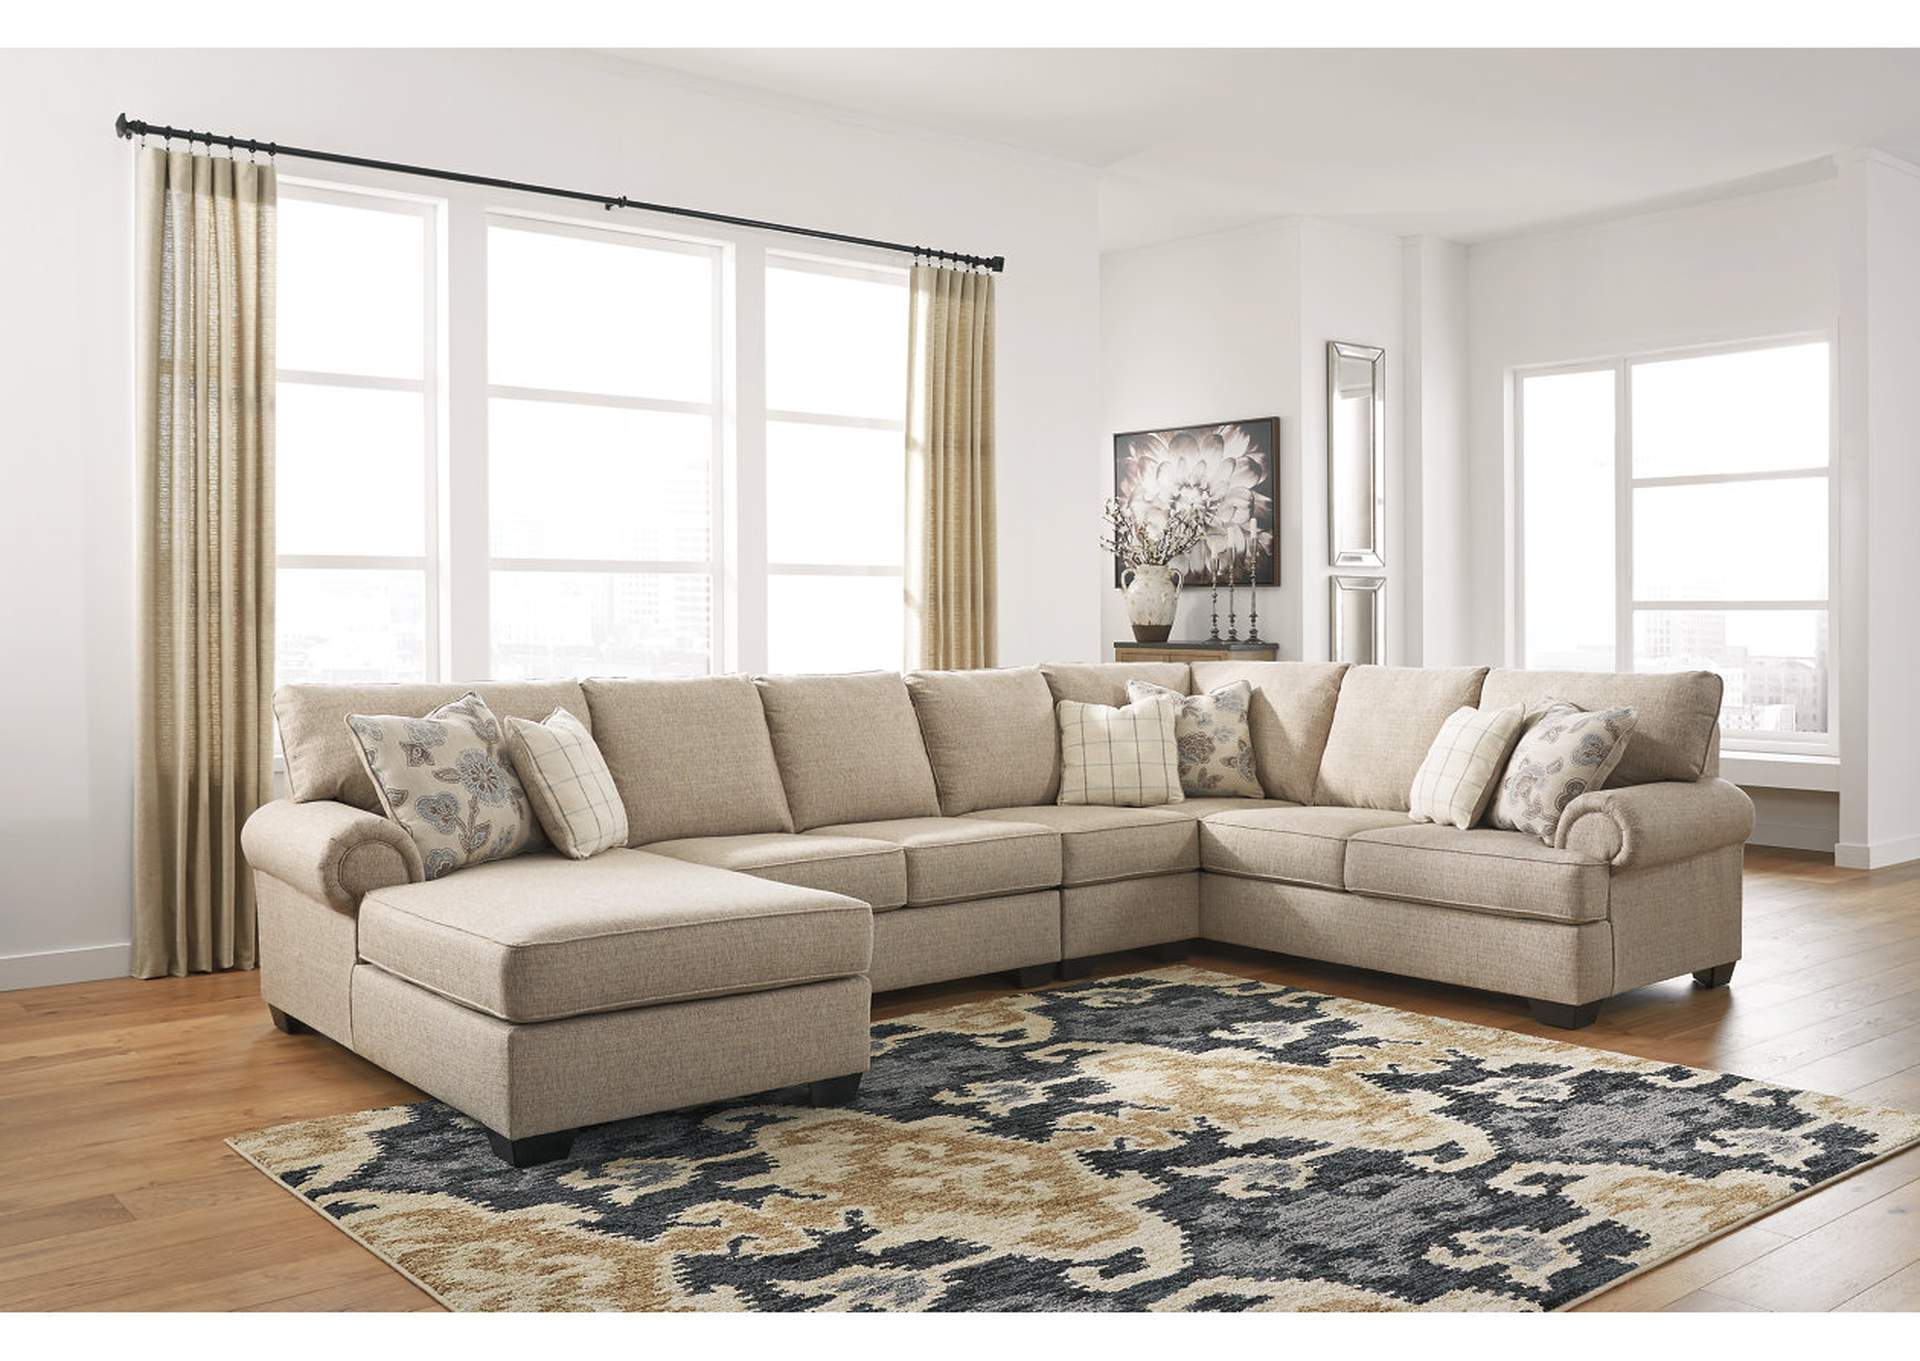 Baceno Hemp 4-Piece Sectional with Chaise,Ashley